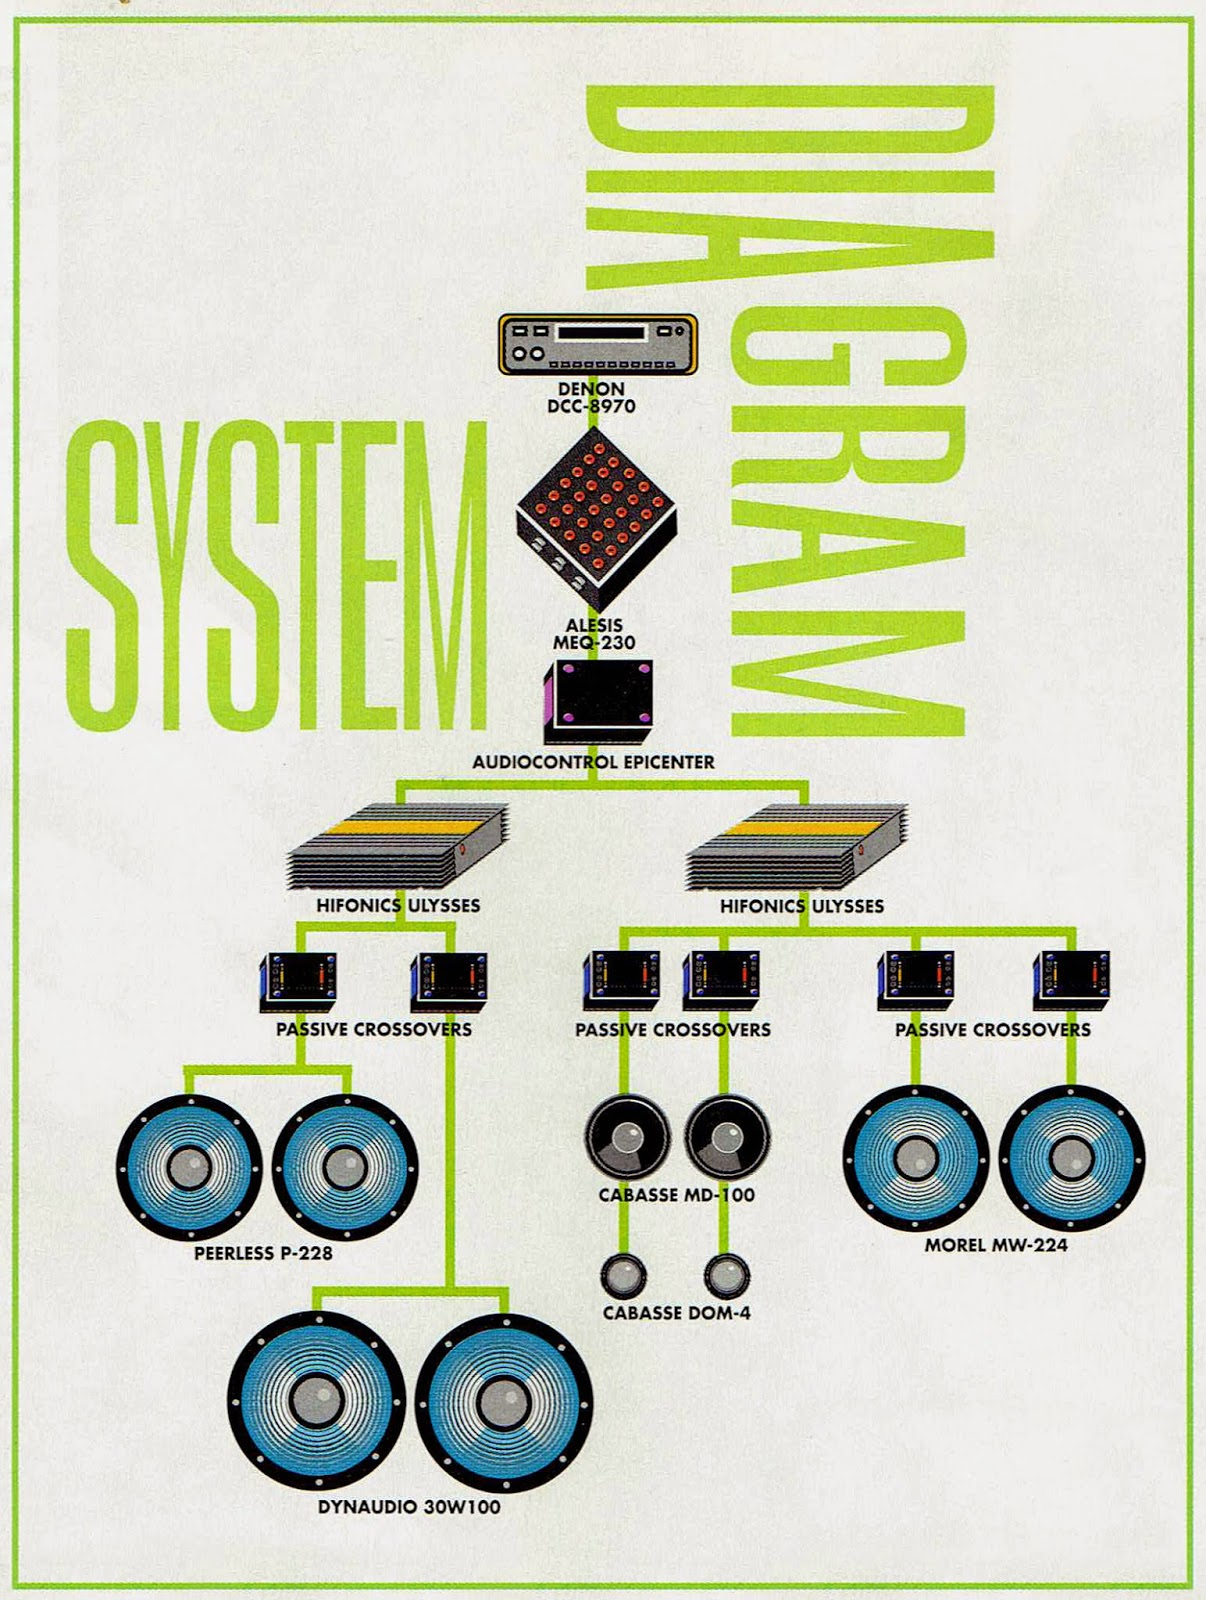 illustration of system diagram in Alberto A Lopez's competition Sentra